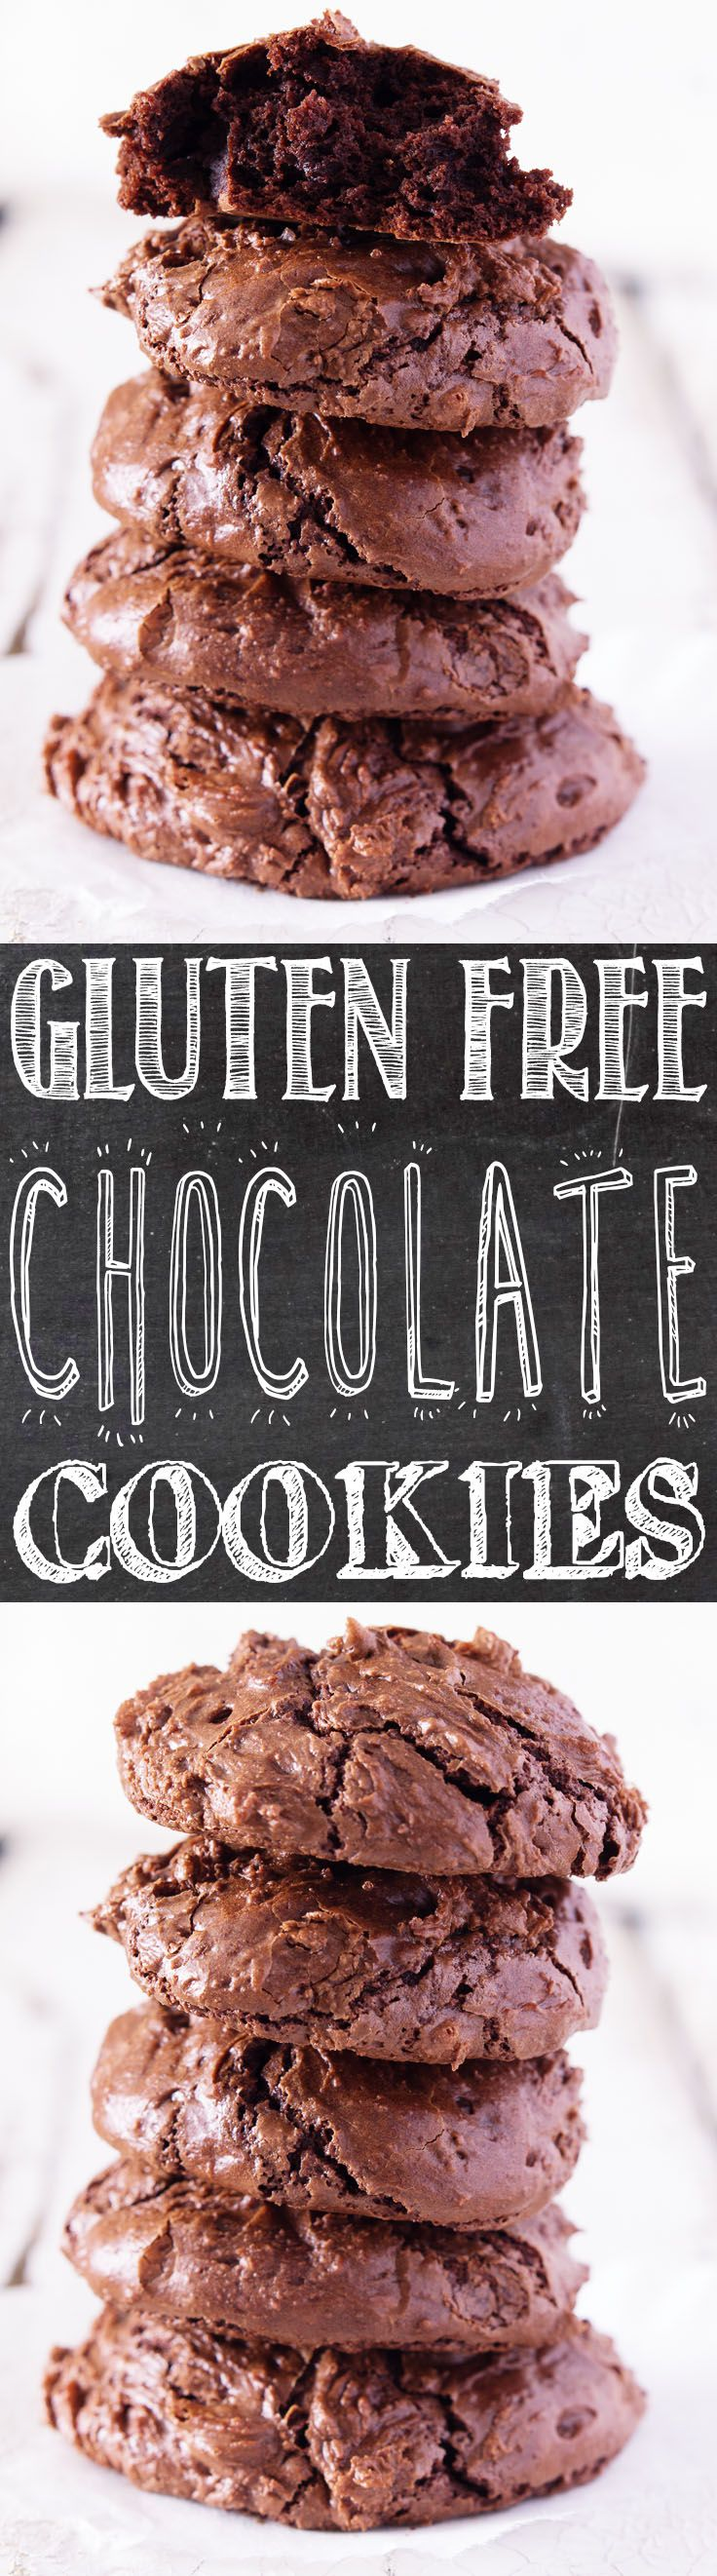 Flourless Chocolate Cookies -  these fudgey, chocolate, almost brownie like cookies were like a big hug. I did mention that they're gluten free, right?